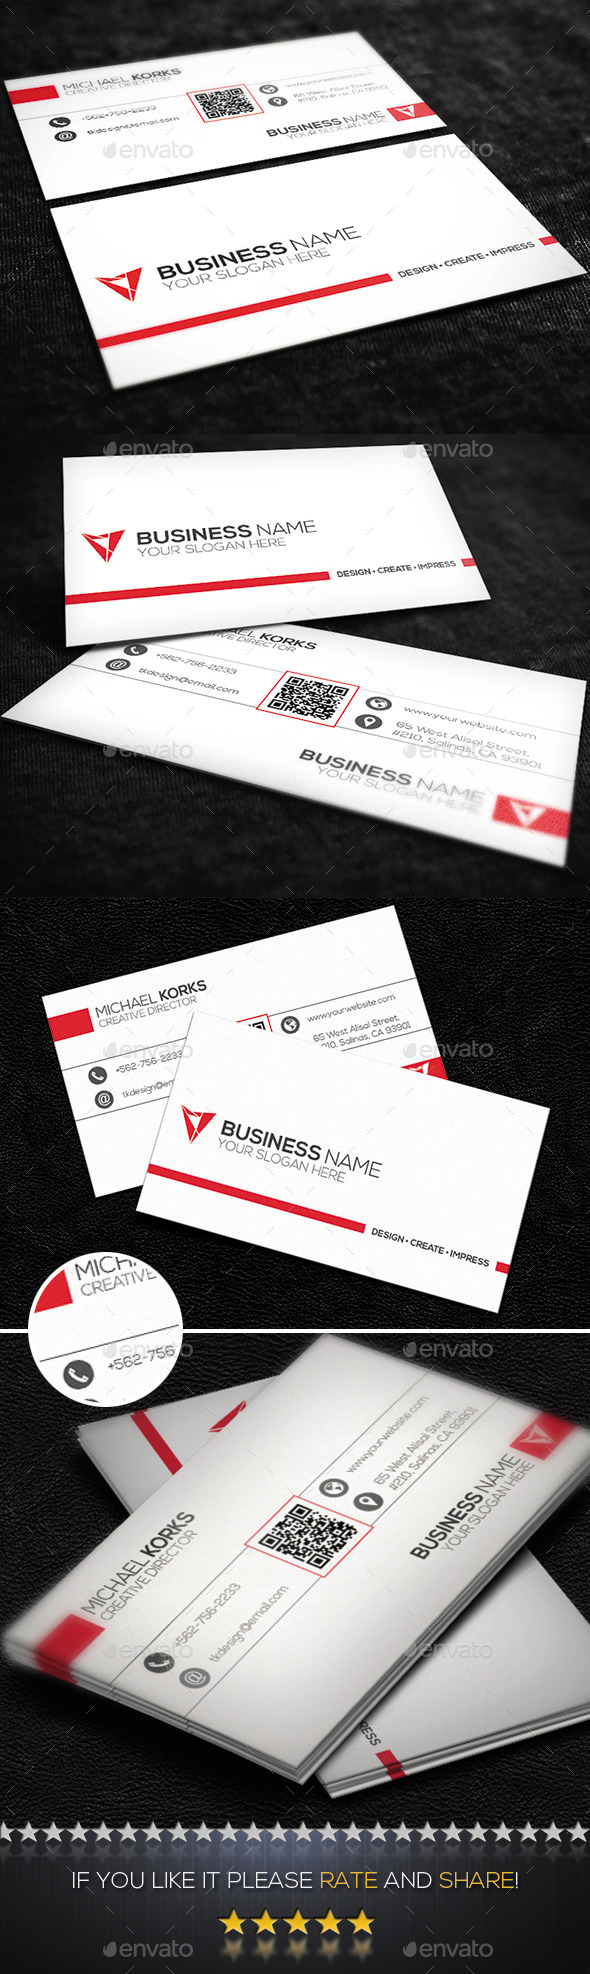 White Creative Business Card No.07 - Creative Business Cards